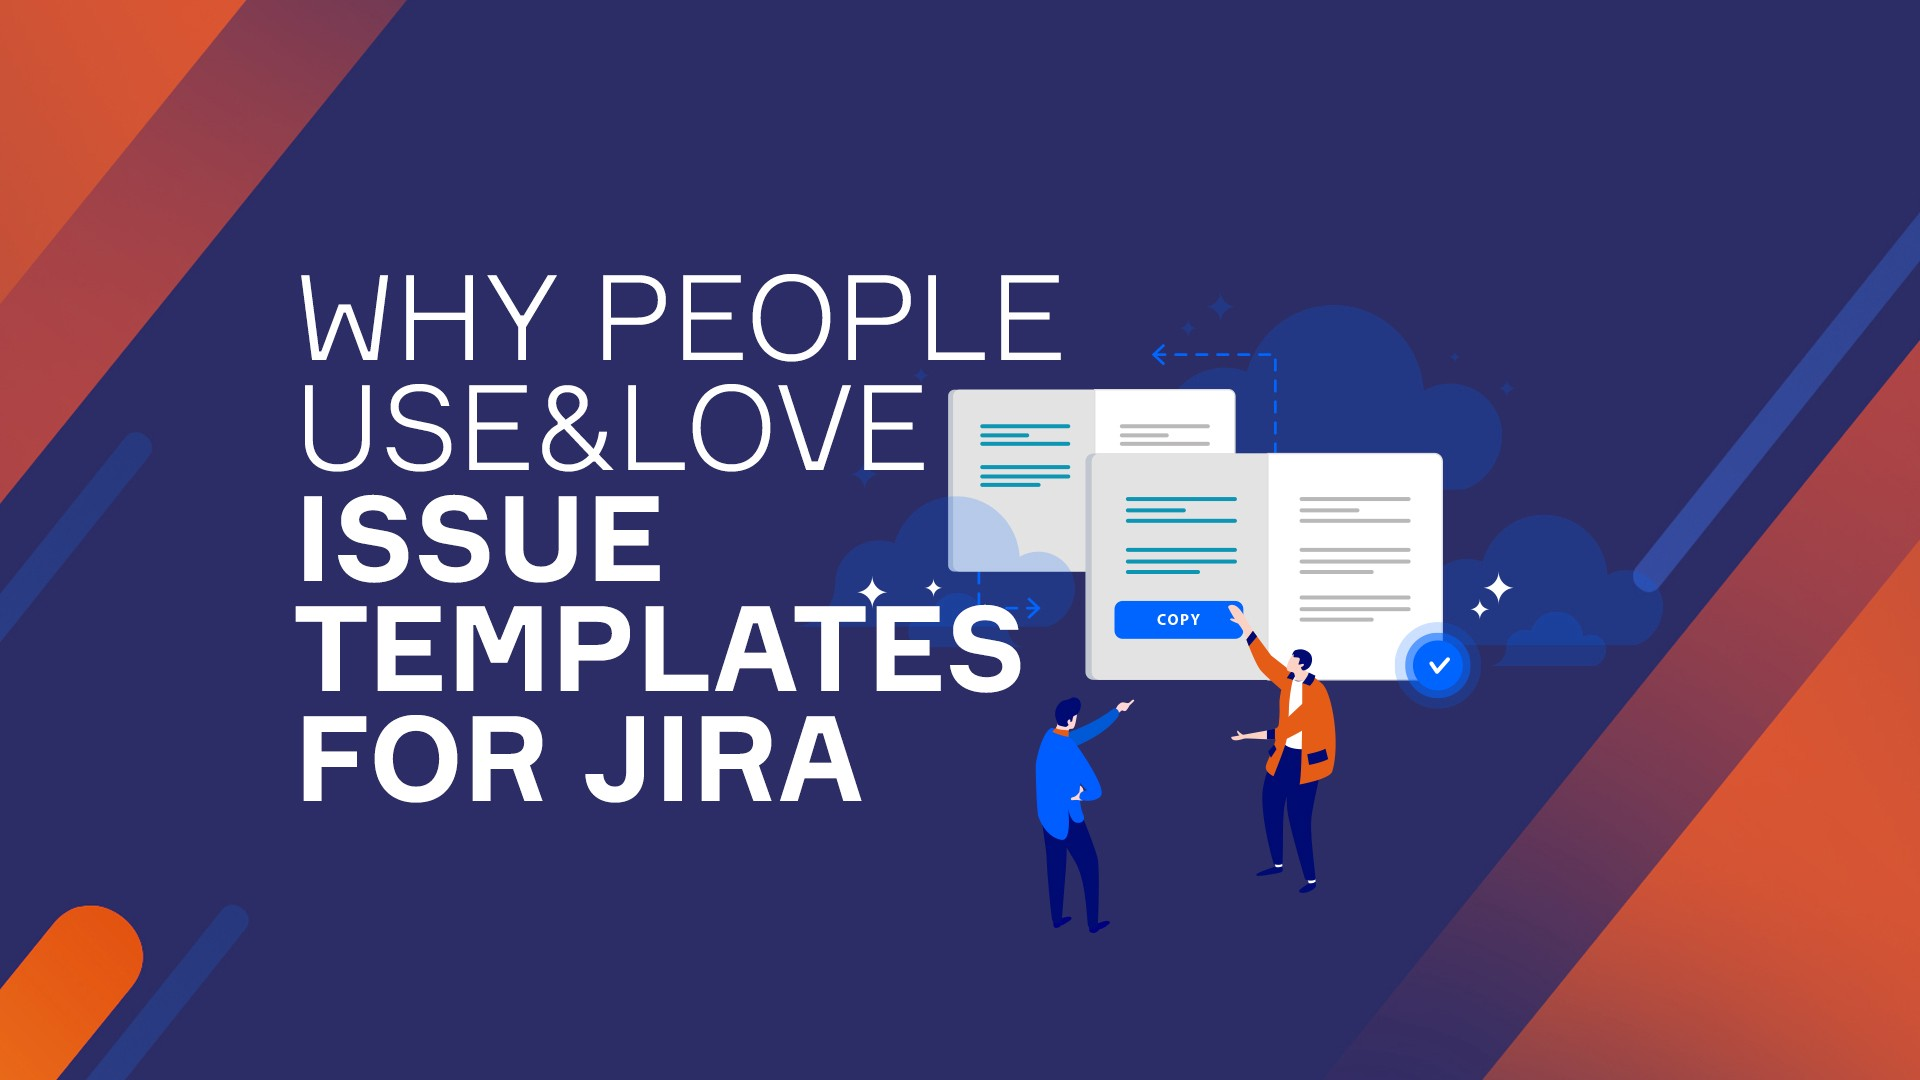 Why People Use And Love Issue Templates For Jira By Krzysztof Skoropada Medium